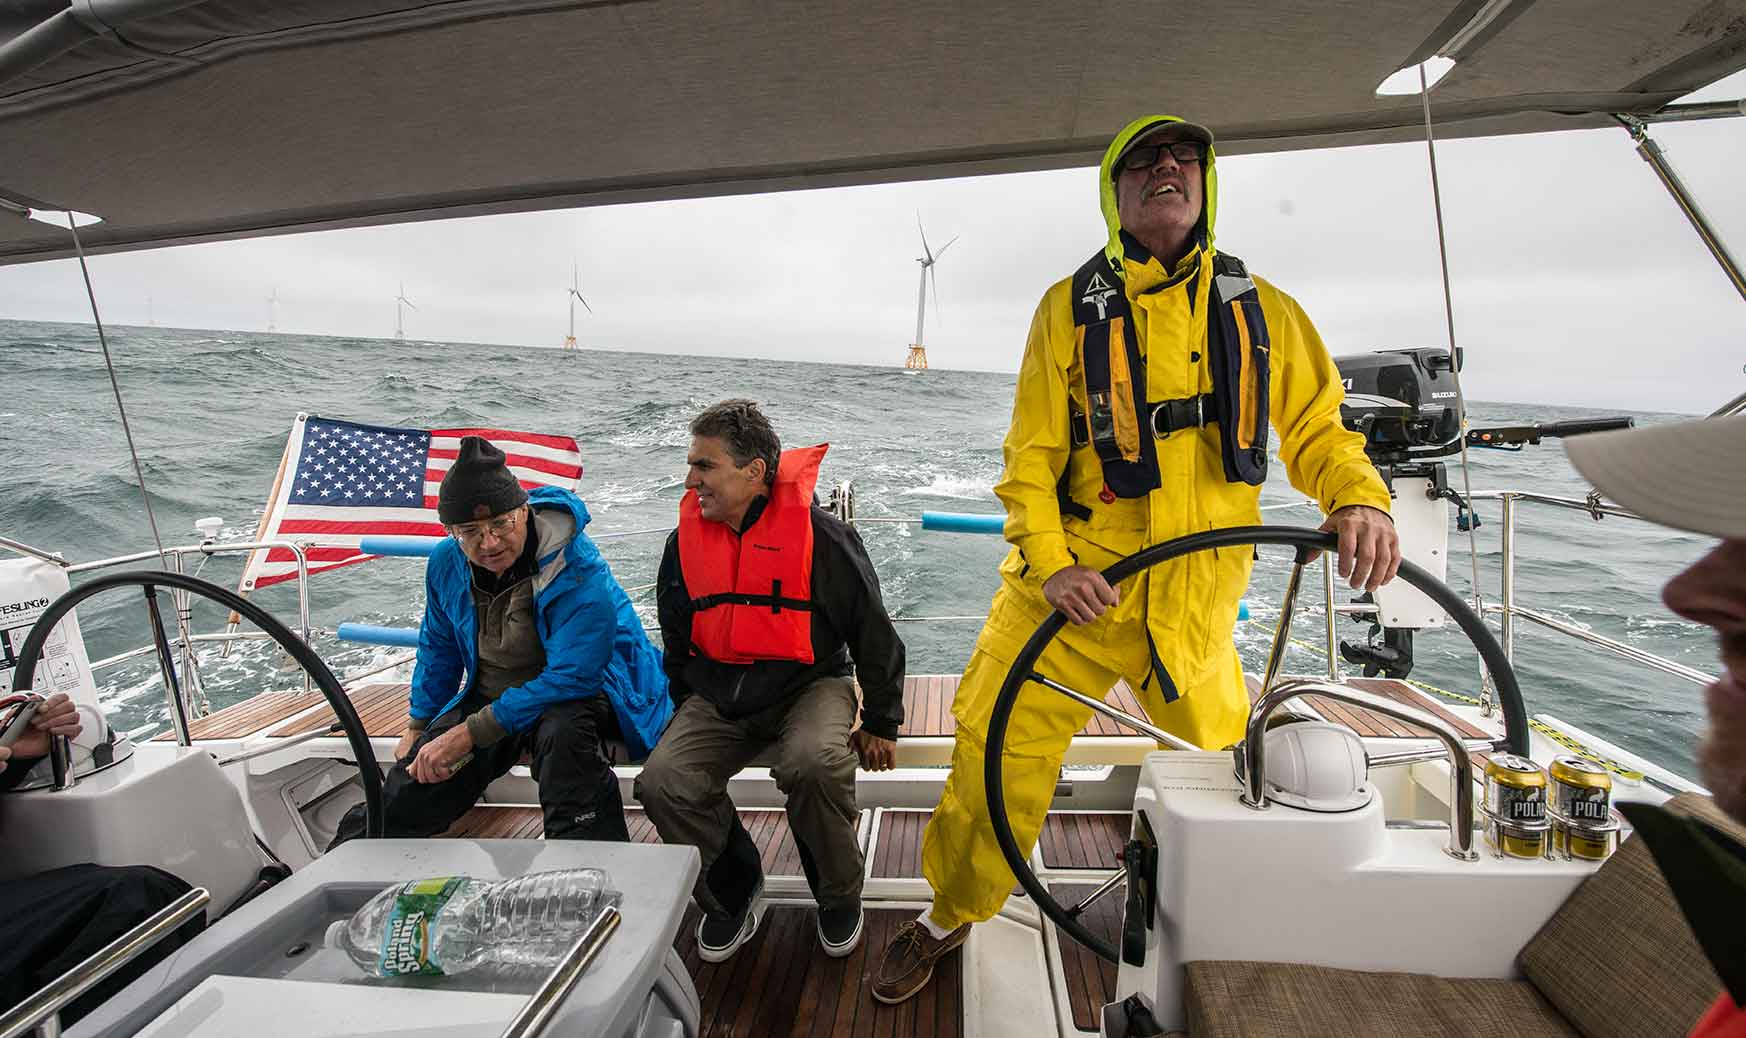 Three men on a boat in rough waters. Two in the background are looking at an offshore wind farm while one in the foreground is steering the boat.